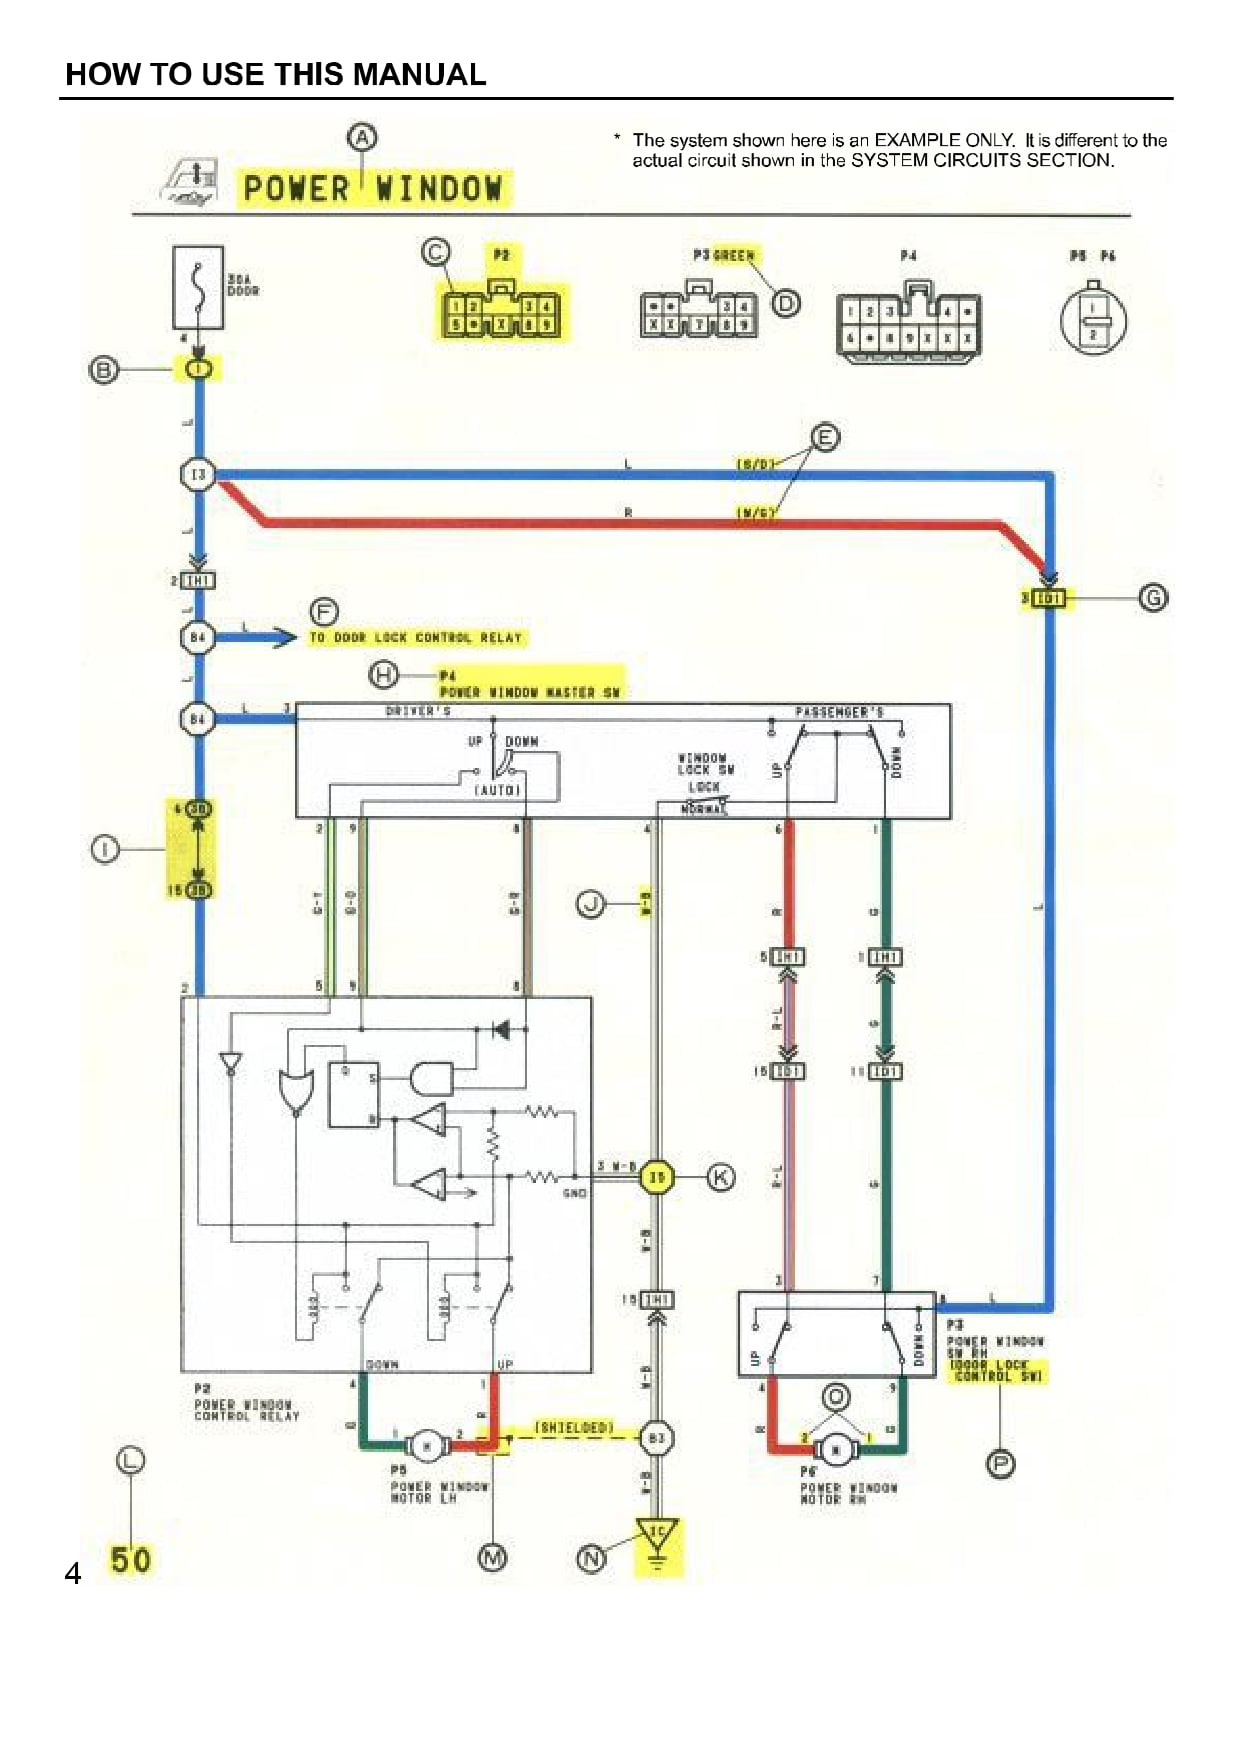 toyota camry wiring diagram - wiring diagram page seek-wait -  seek-wait.faishoppingconsvitol.it  faishoppingconsvitol.it